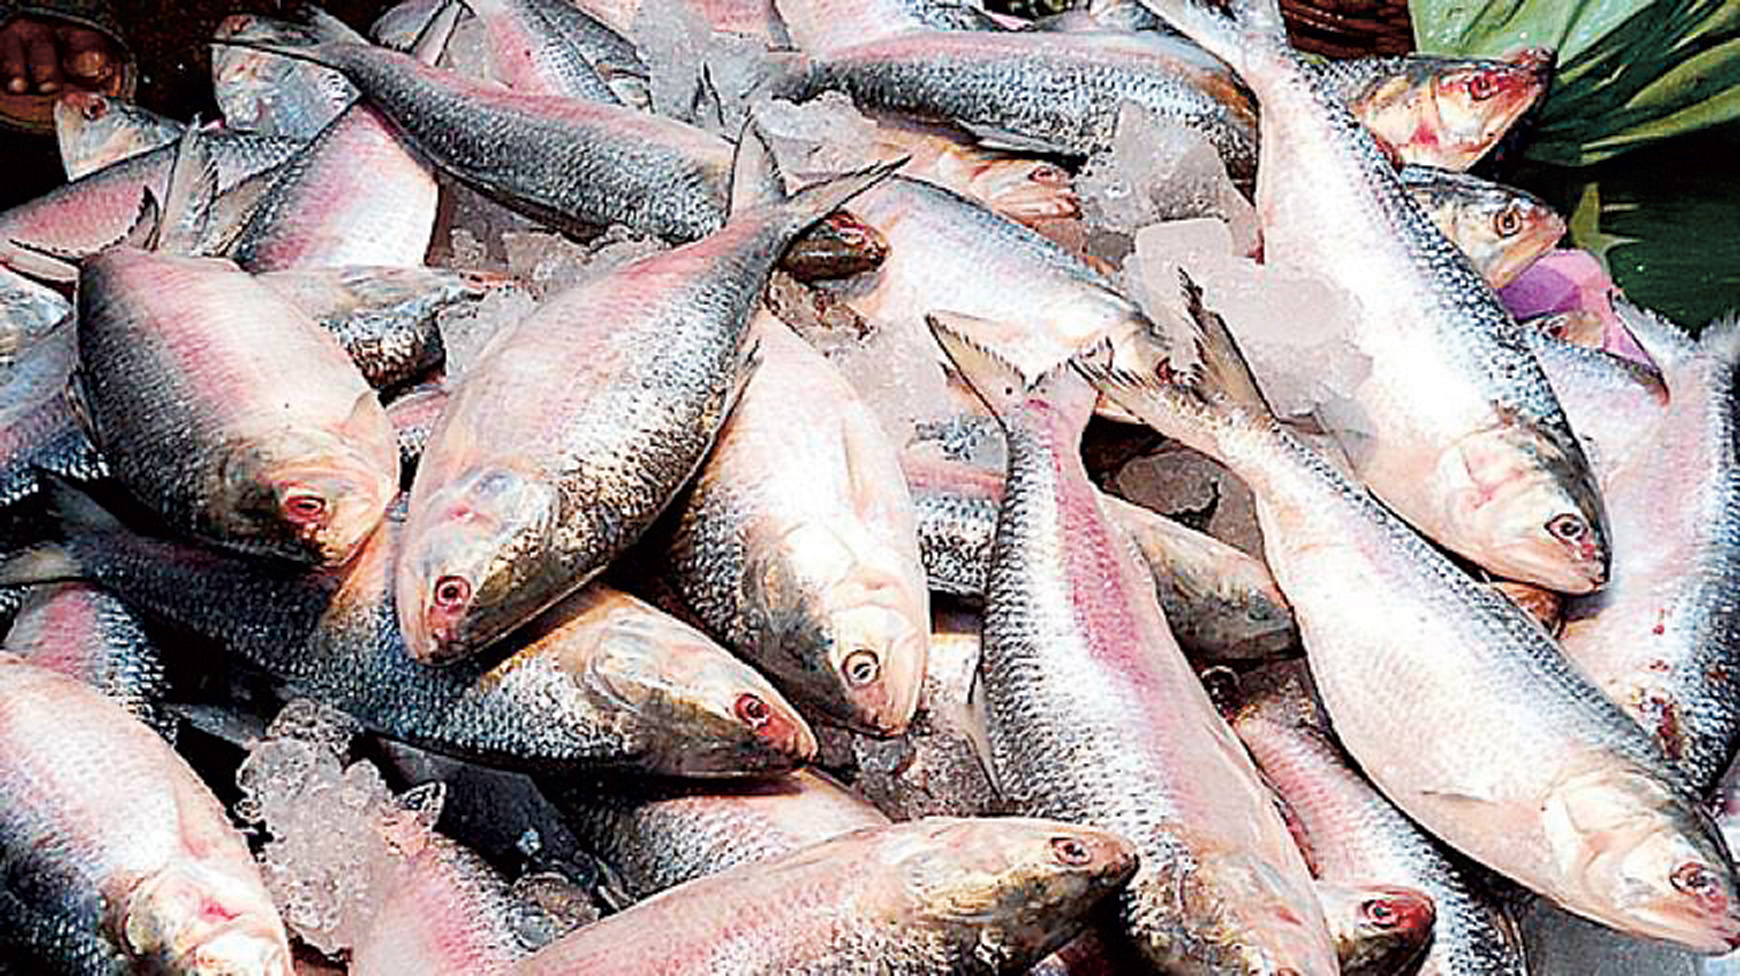 Hilsa